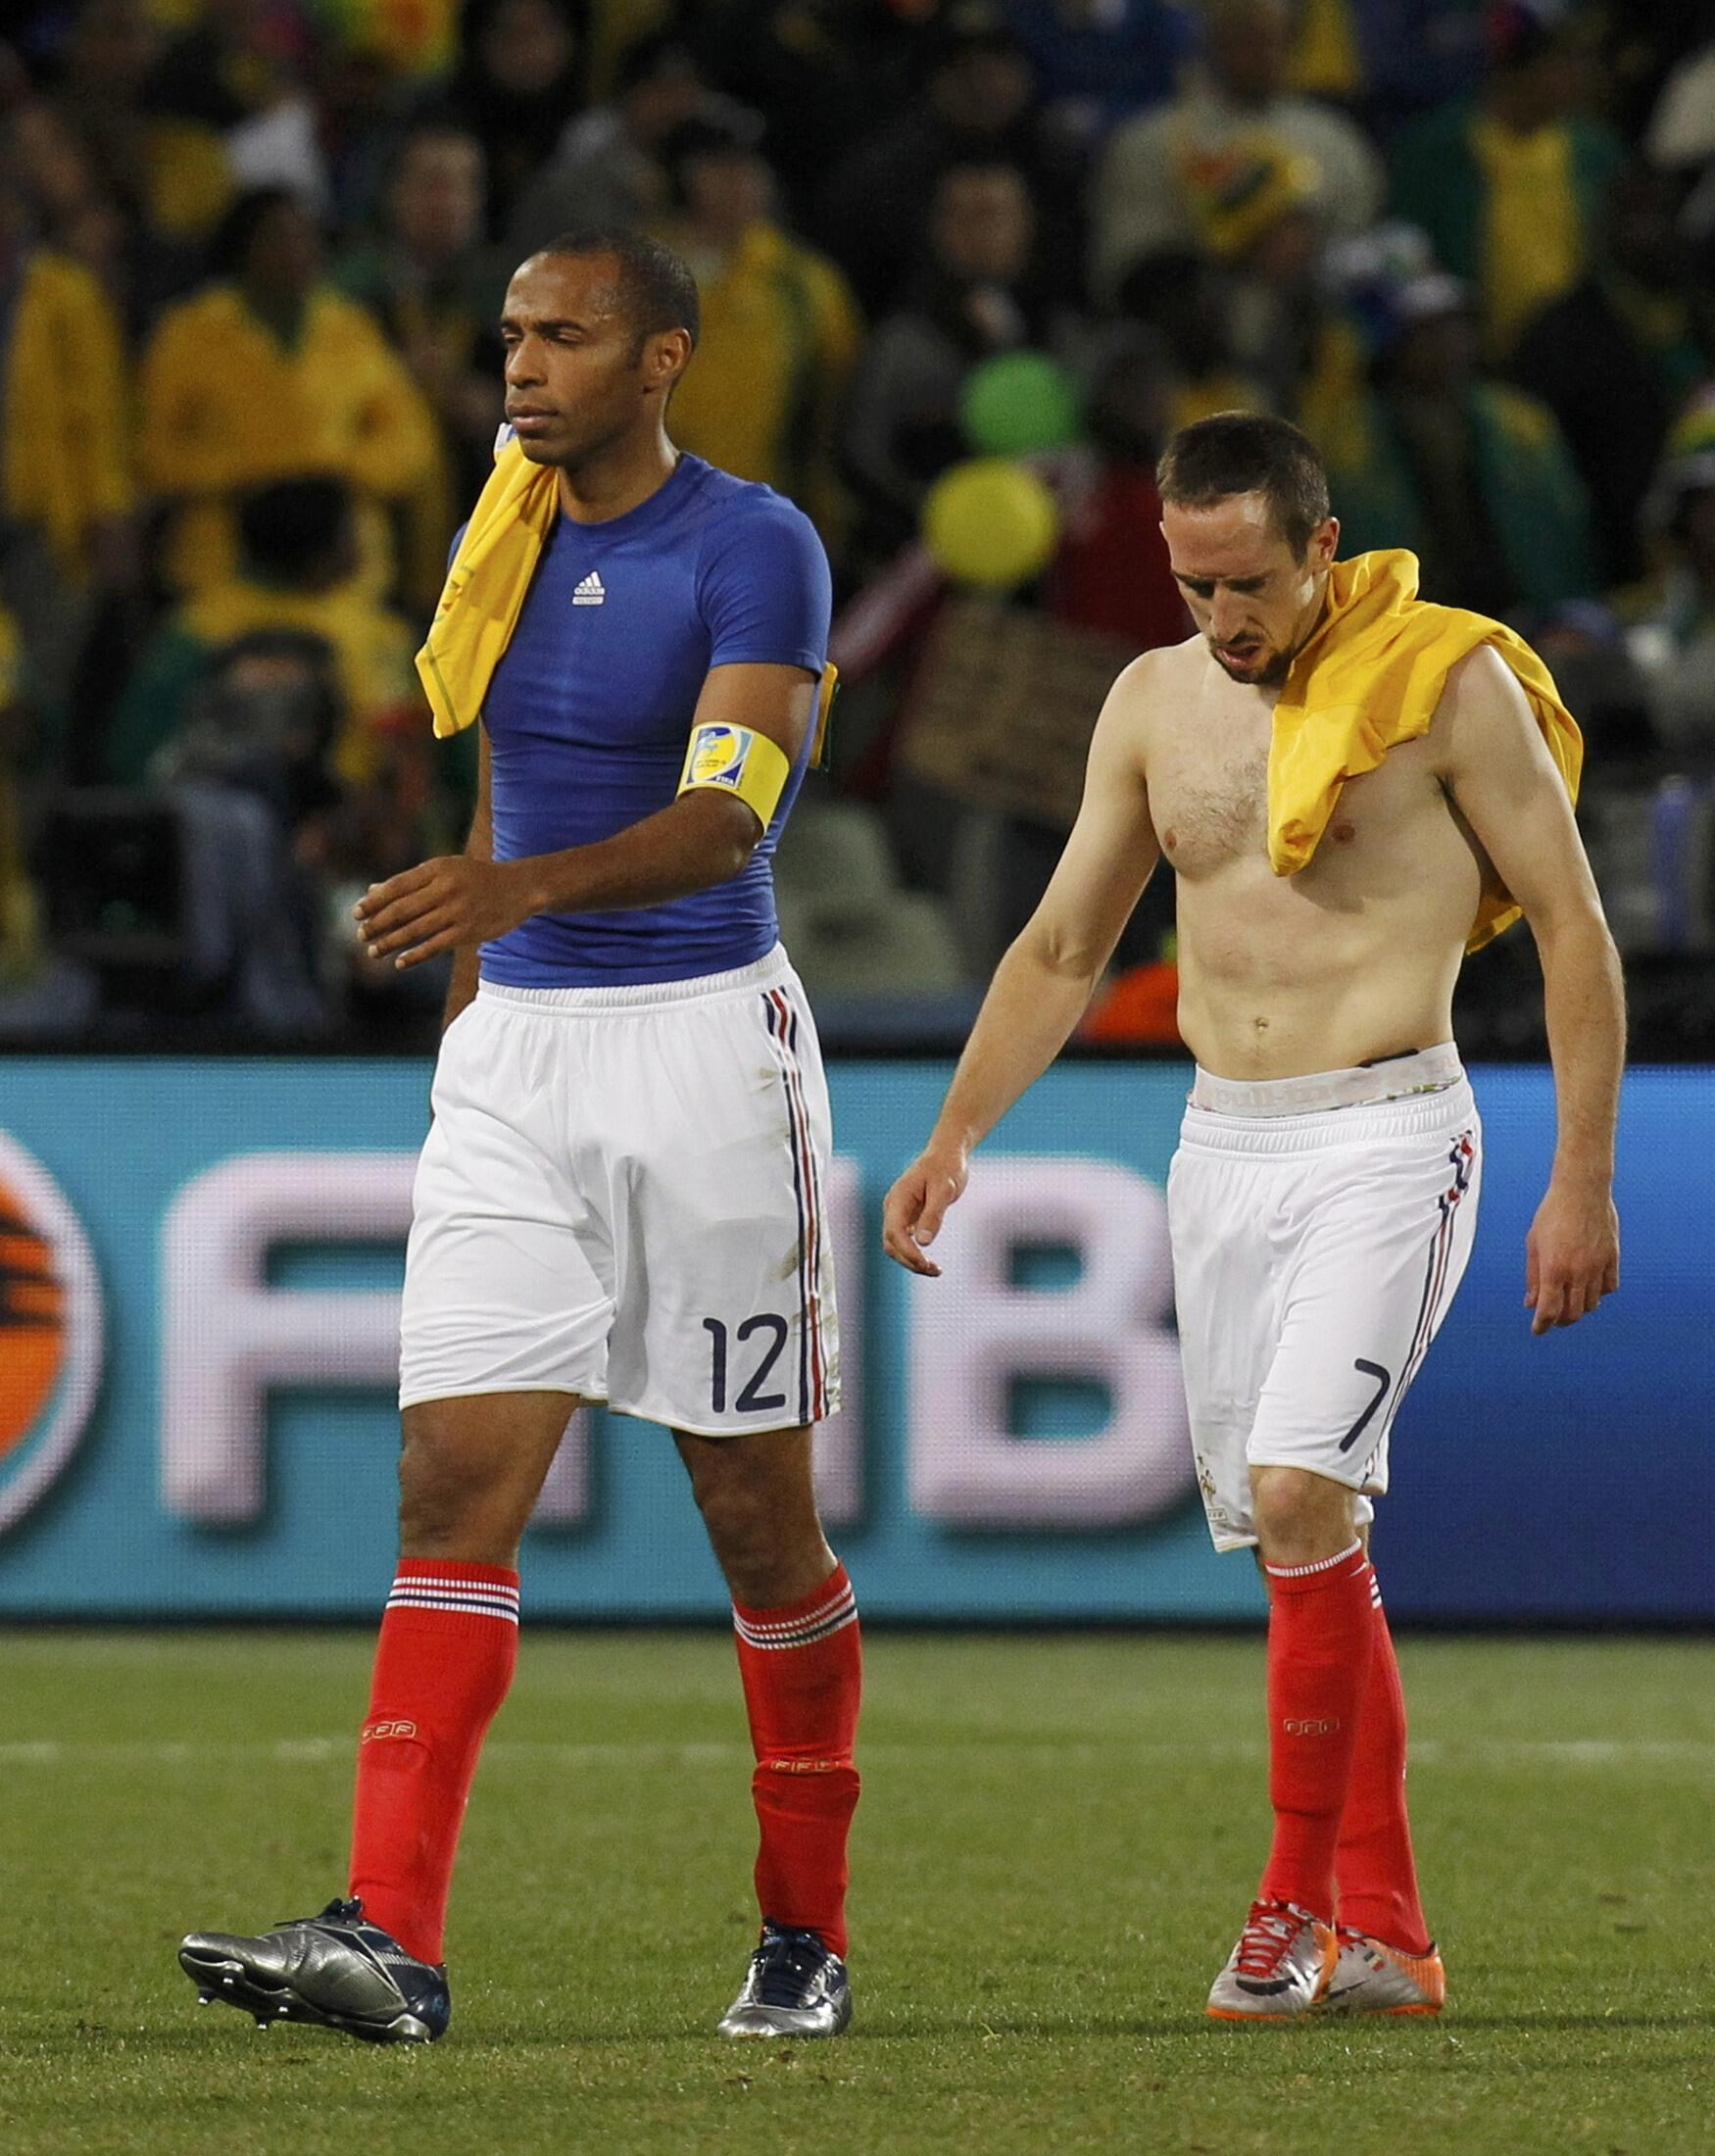 Ribery leaves the pitch after loss to South Africa during 2010 World Cup, Bloemfontein, 22 June